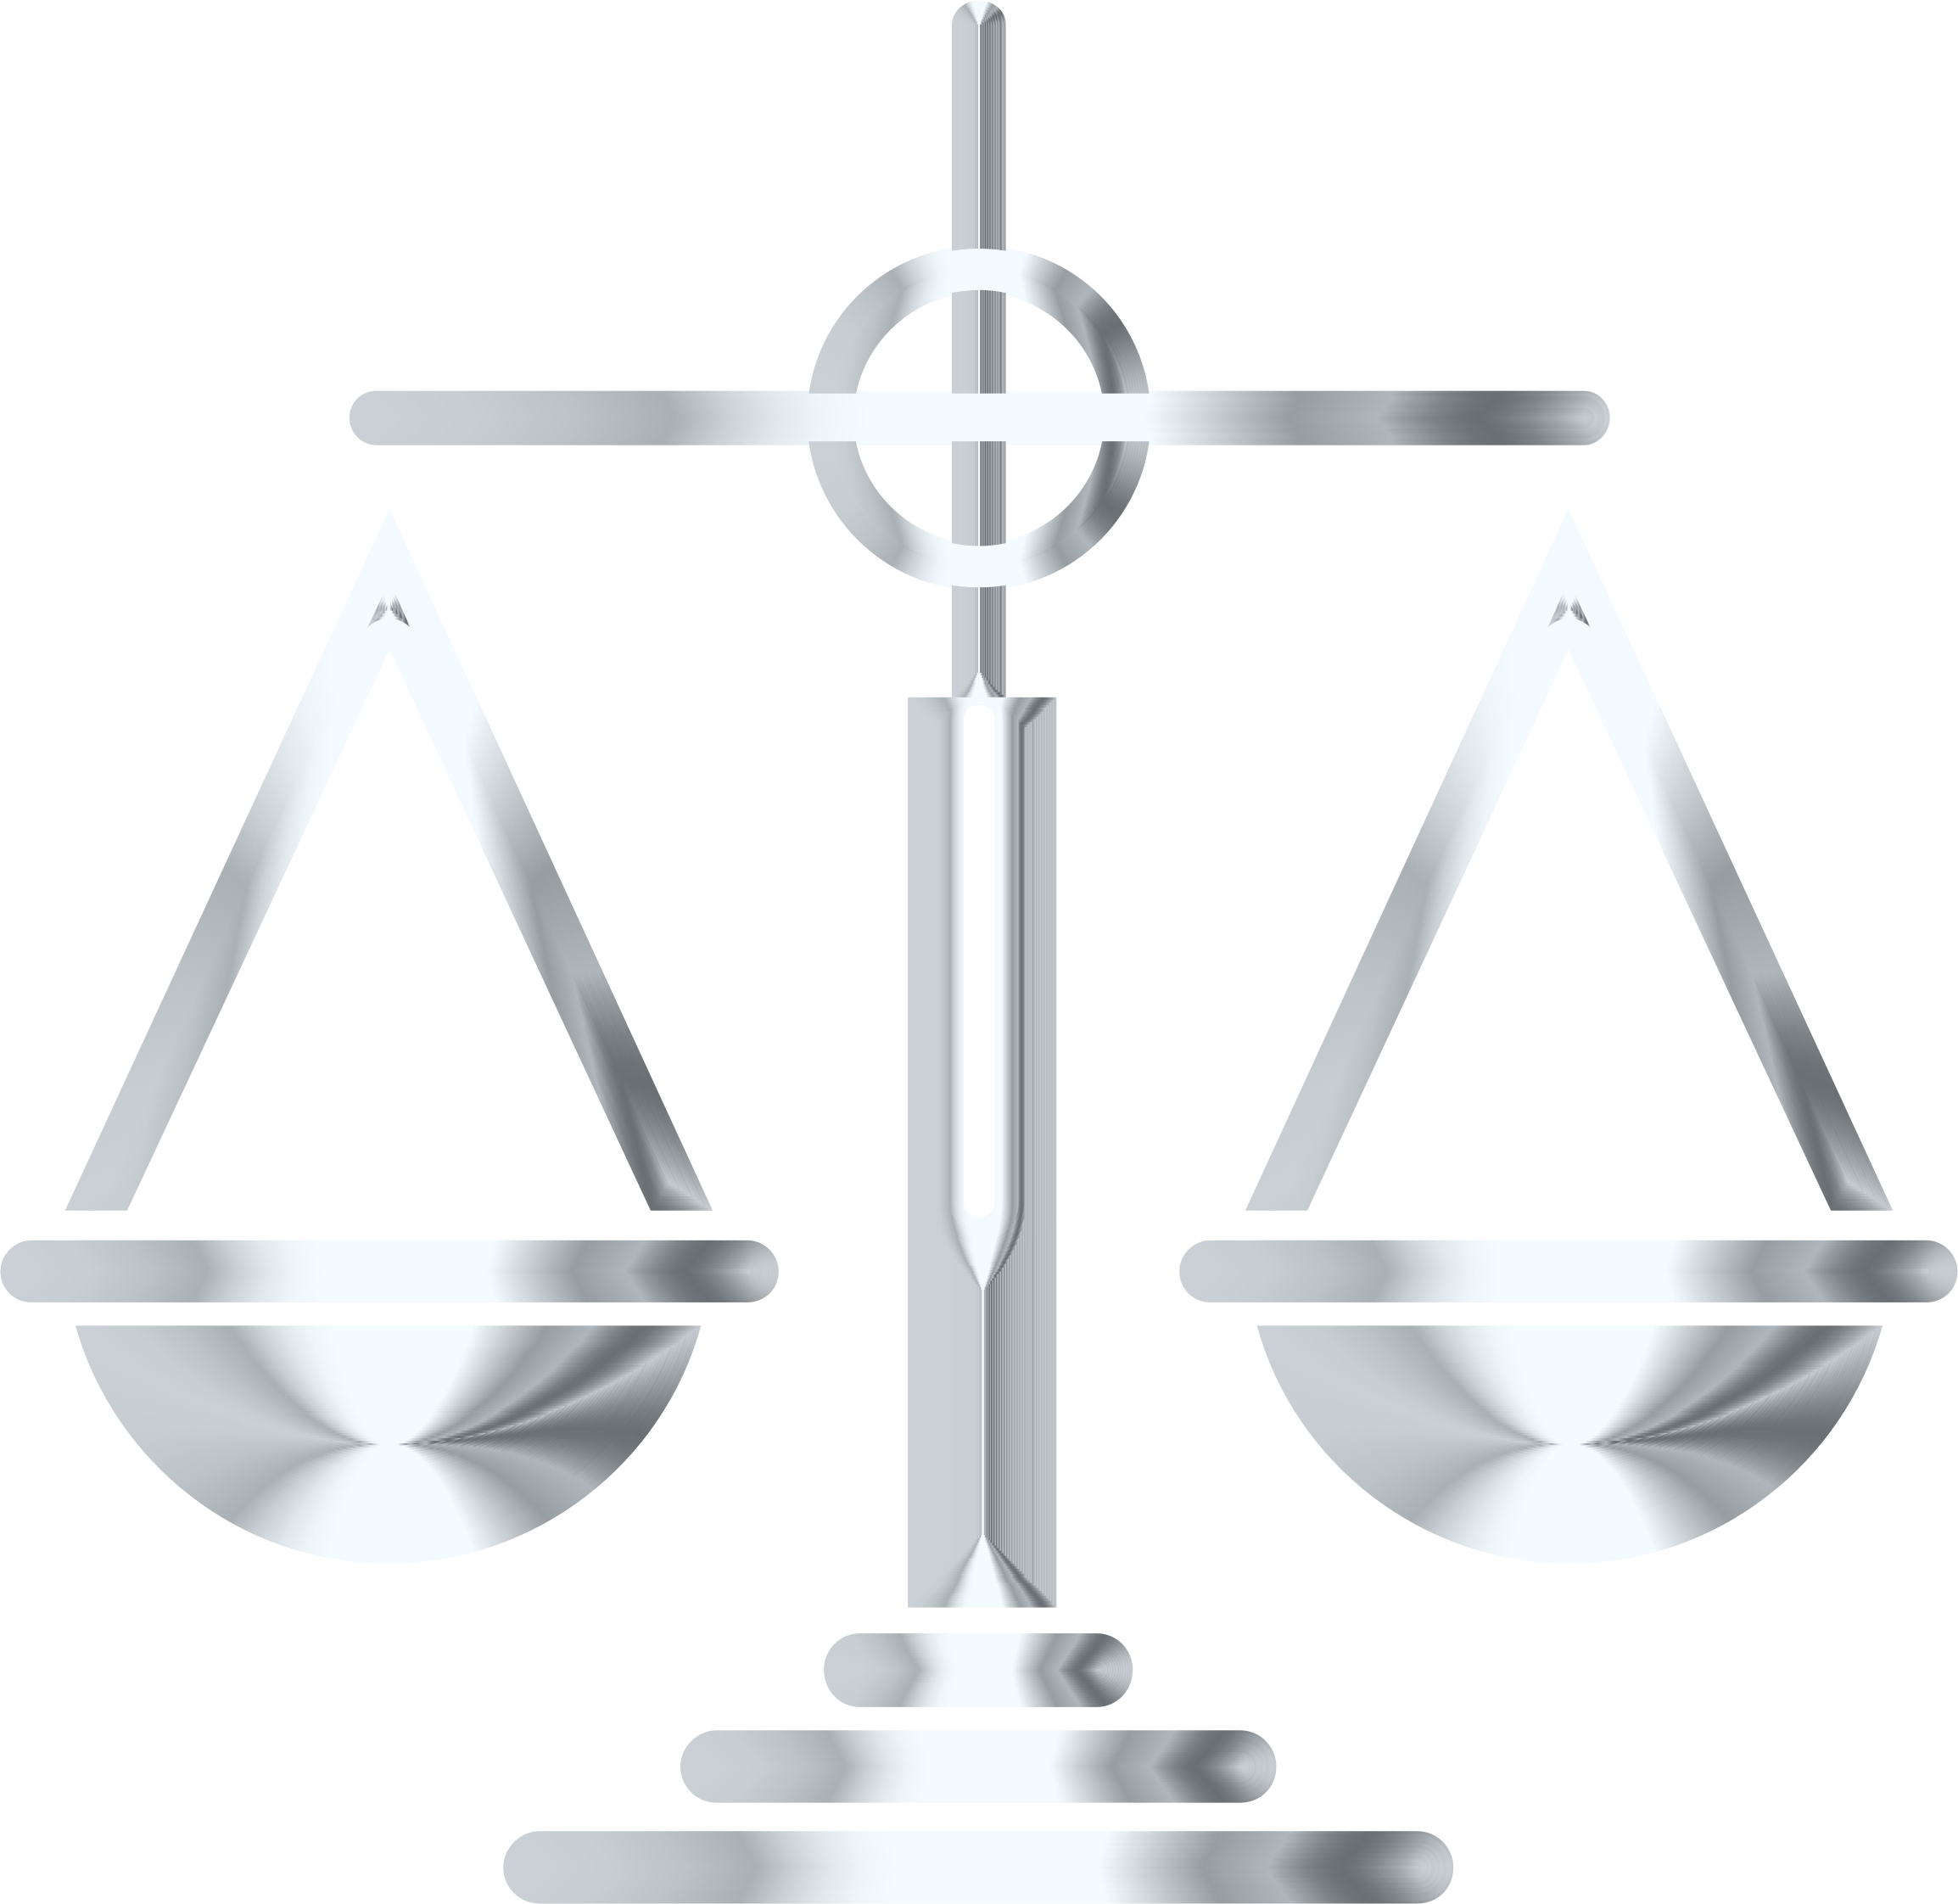 Justice clipart weight measure. Silver scales of icon